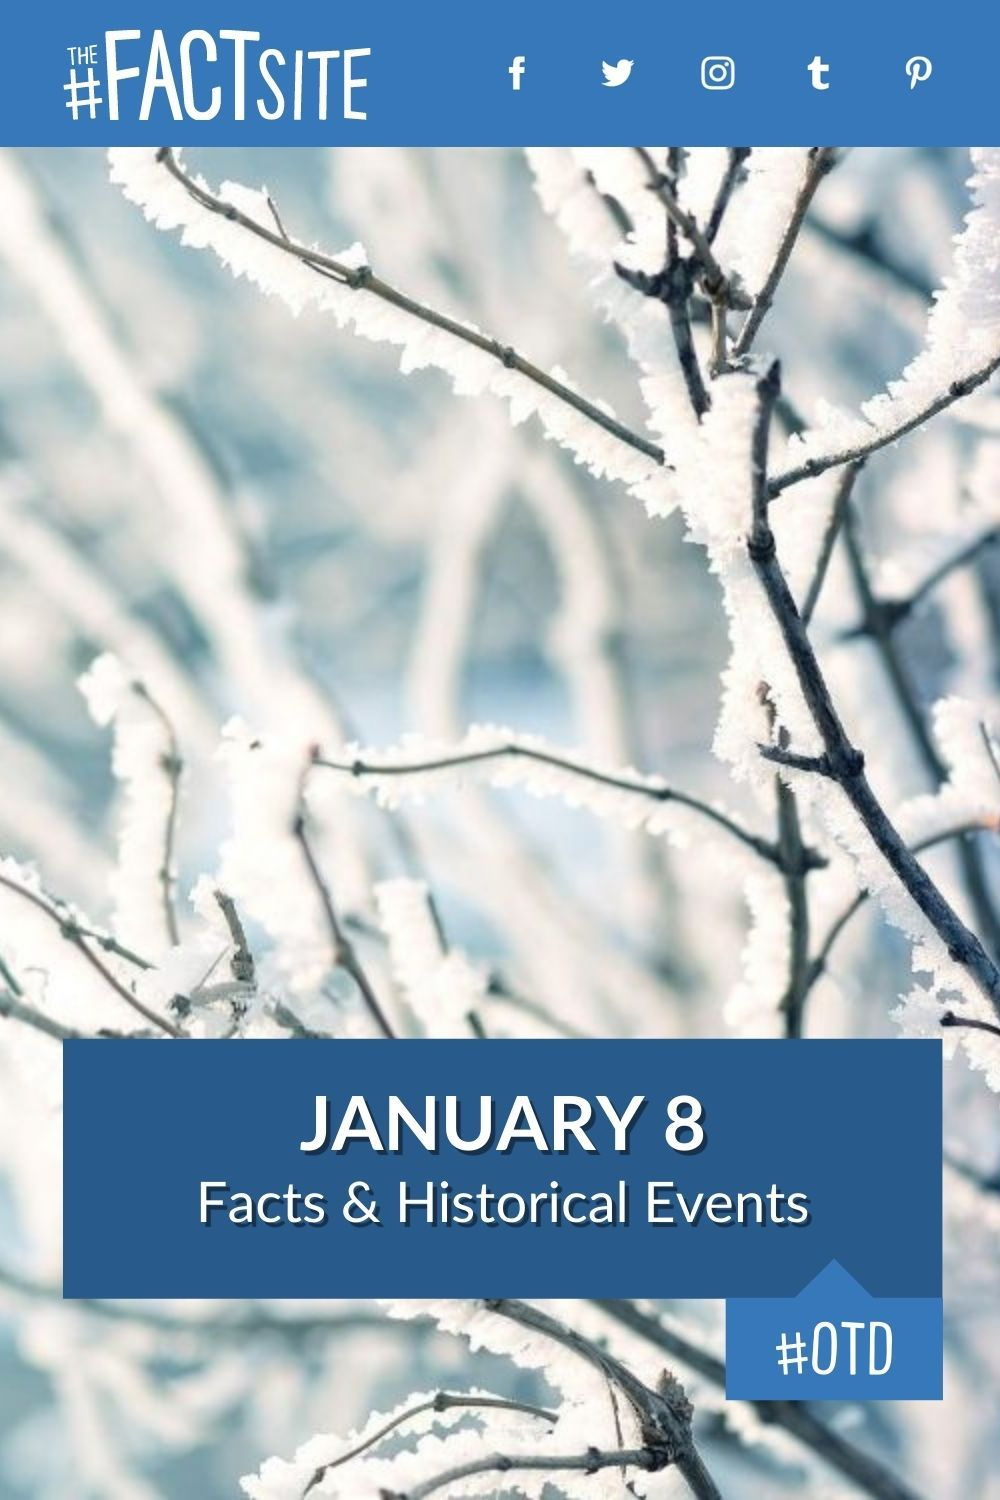 Facts & Historic Events That Happened on January 8